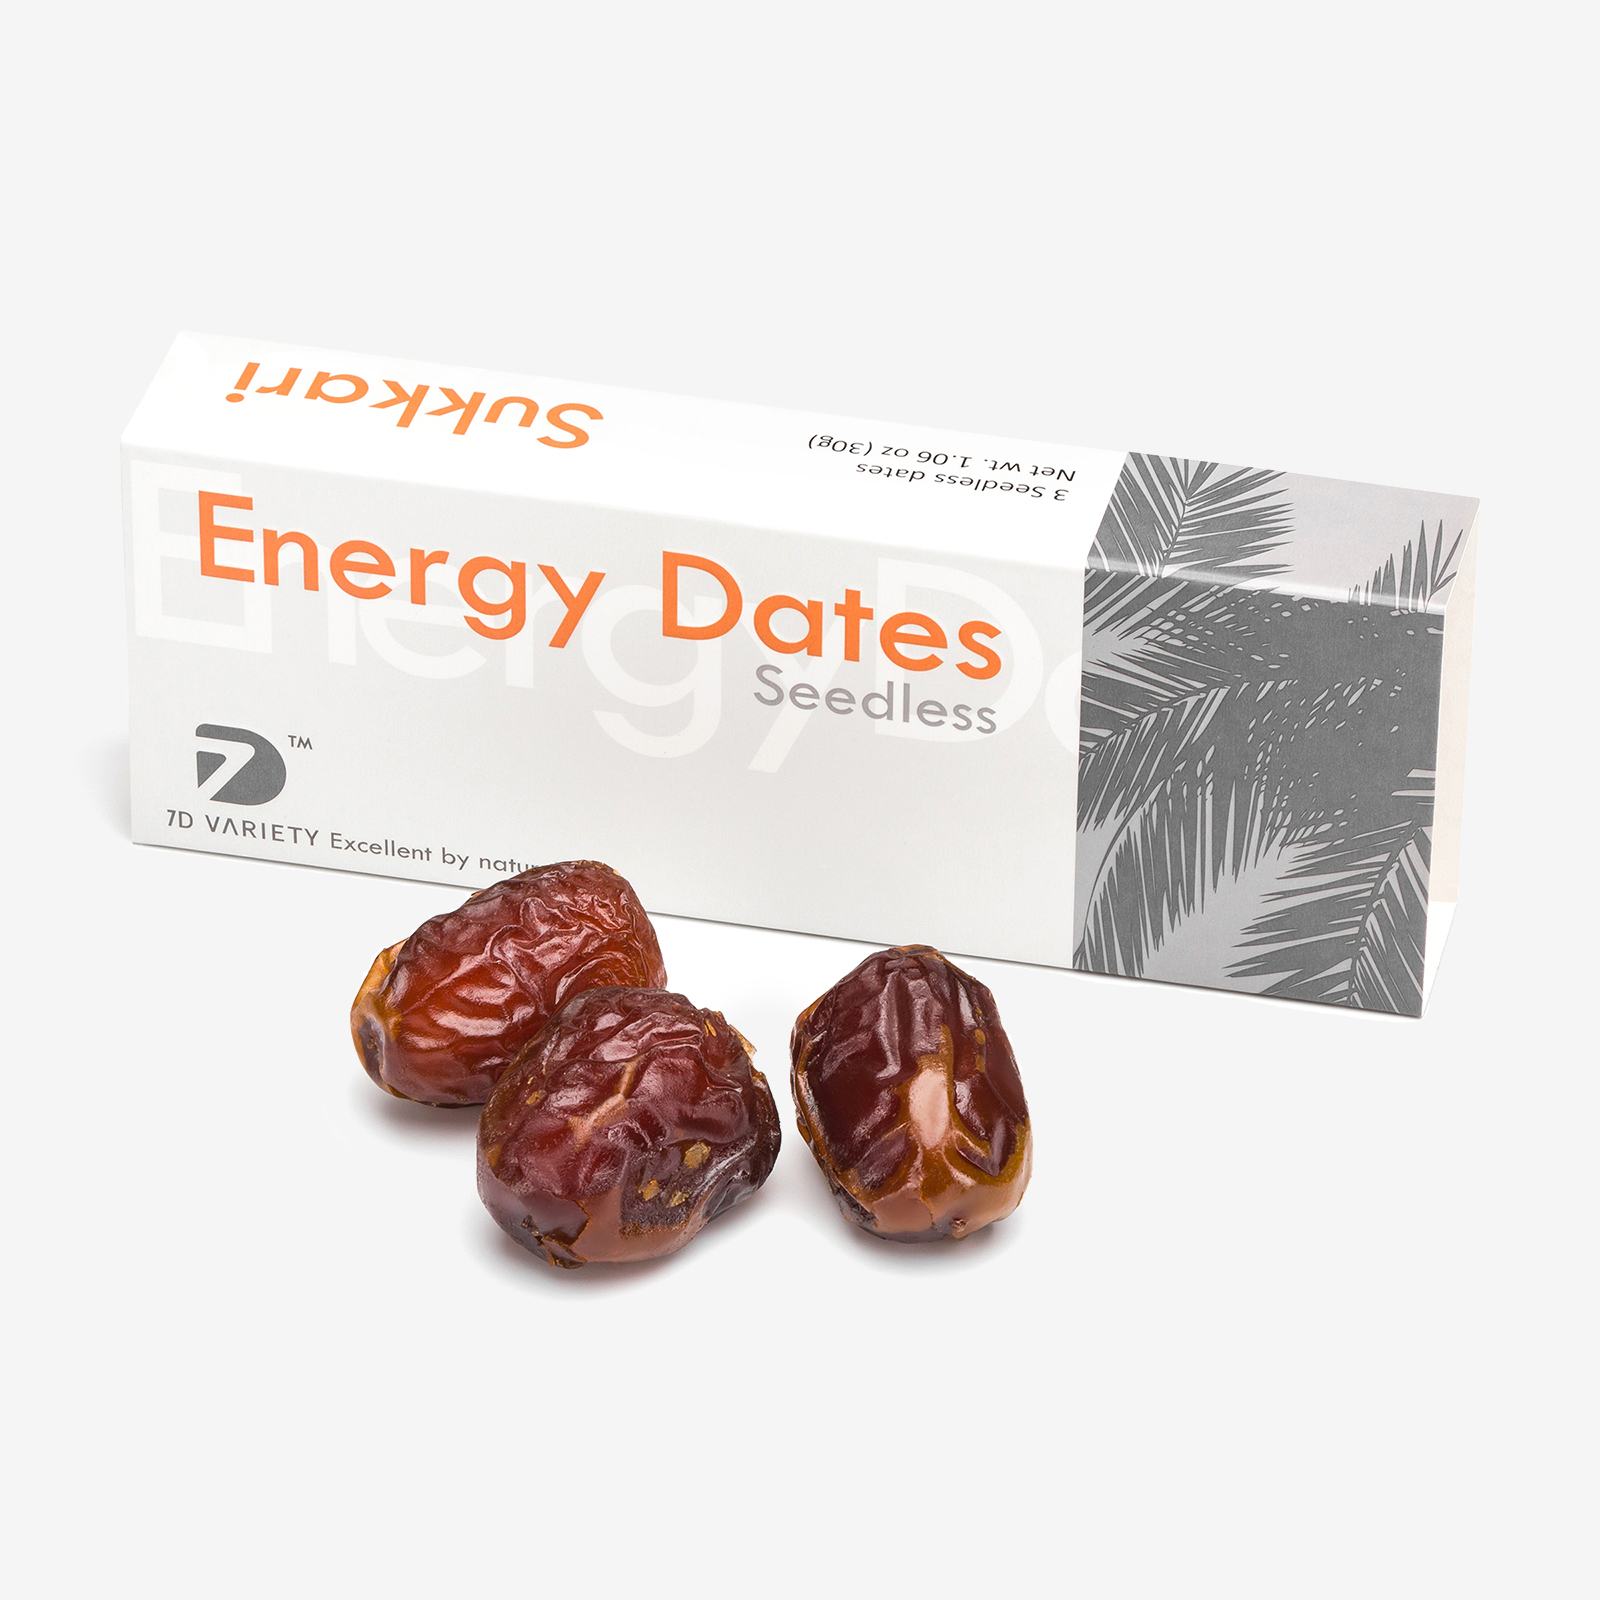 Snack product image